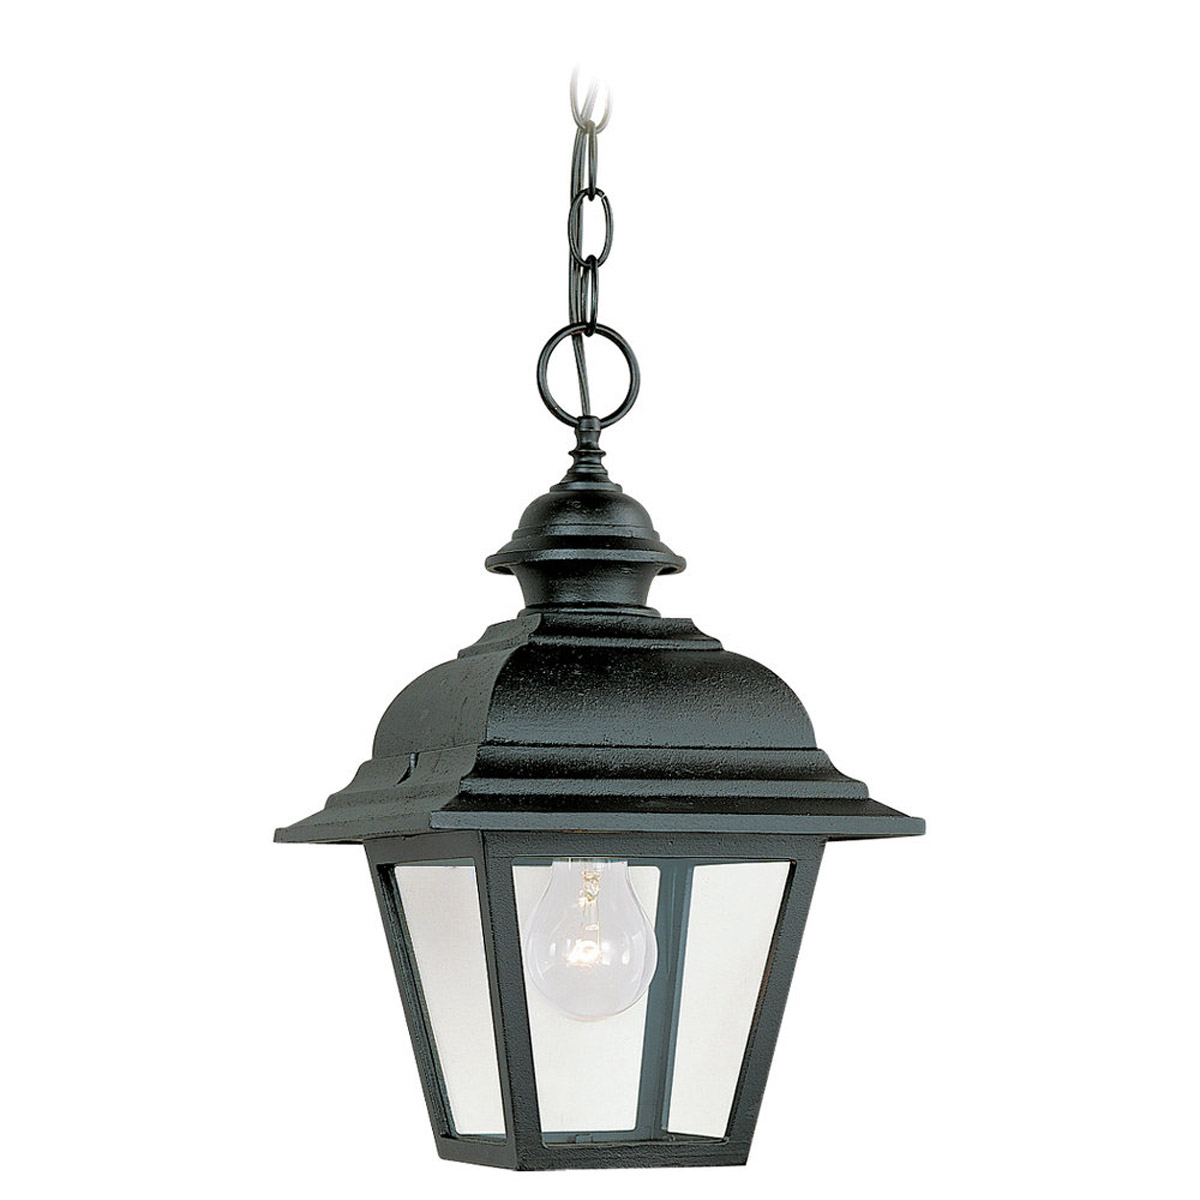 Sea Gull Lighting Bancroft 1 Light Outdoor Pendant in Black 6016-12 photo